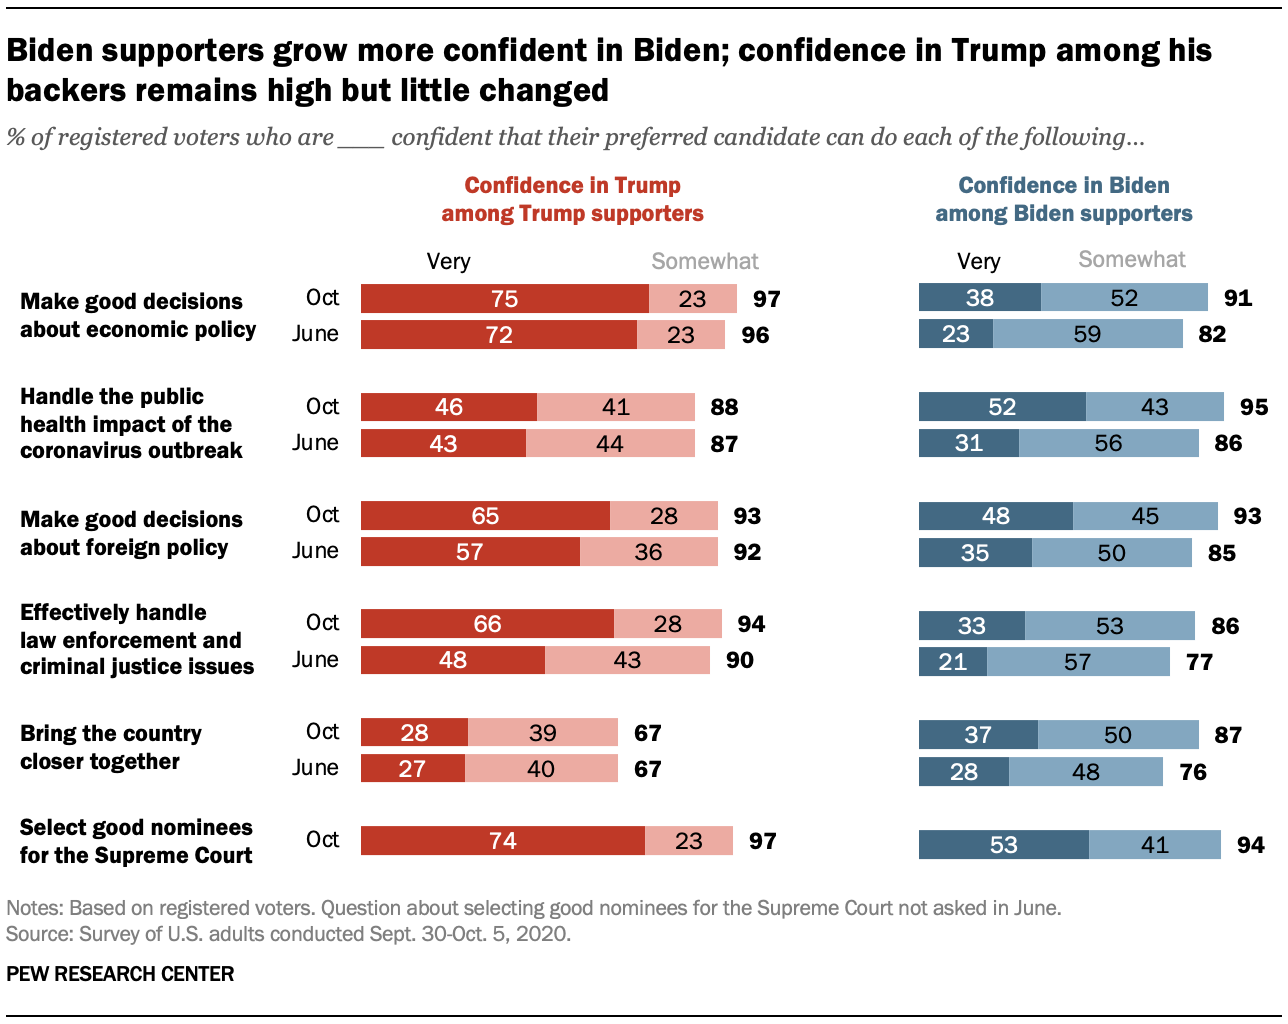 Biden supporters grow more confident in Biden; confidence in Trump among his backers remains high but little changed